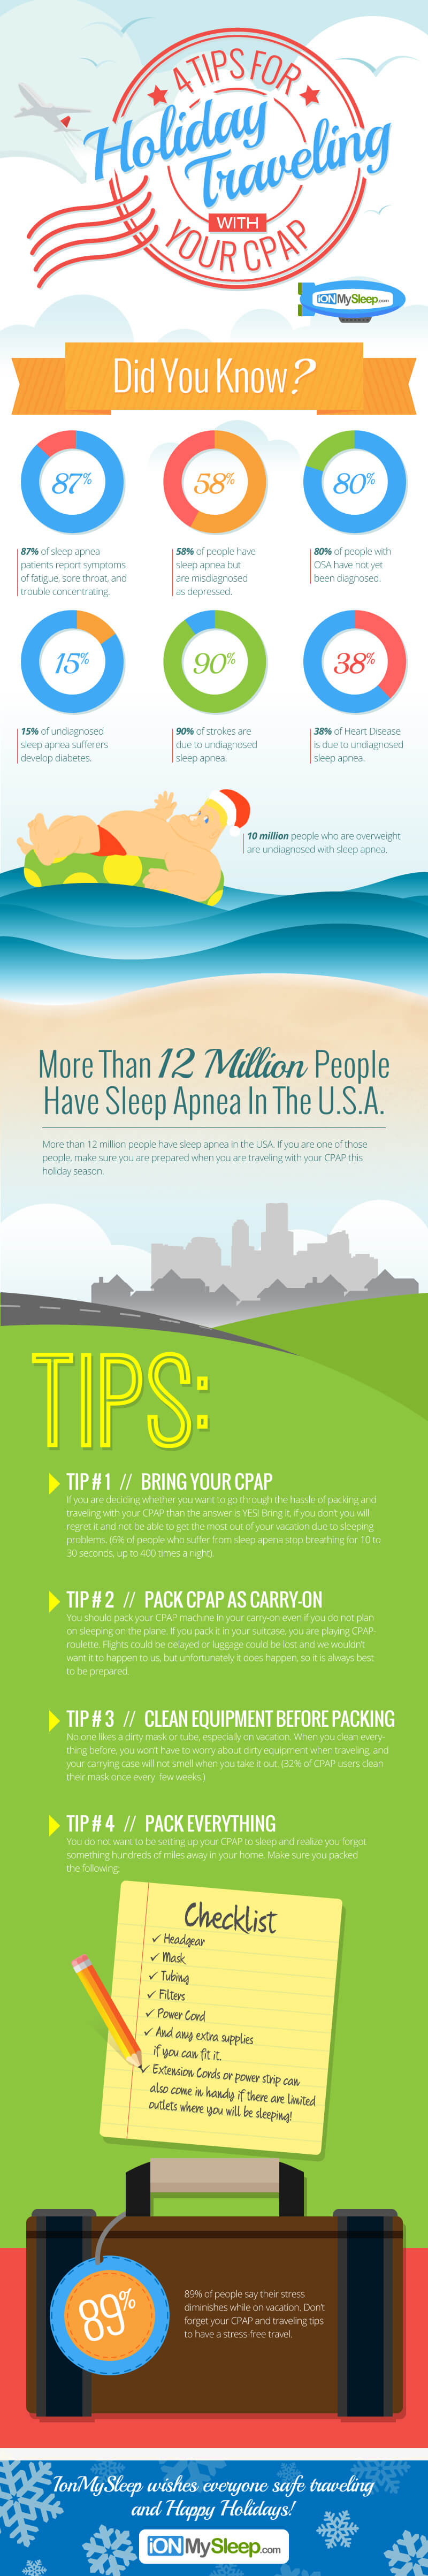 4-Tips-for-Holiday-Traveling-With-Your-CPAP-infographic